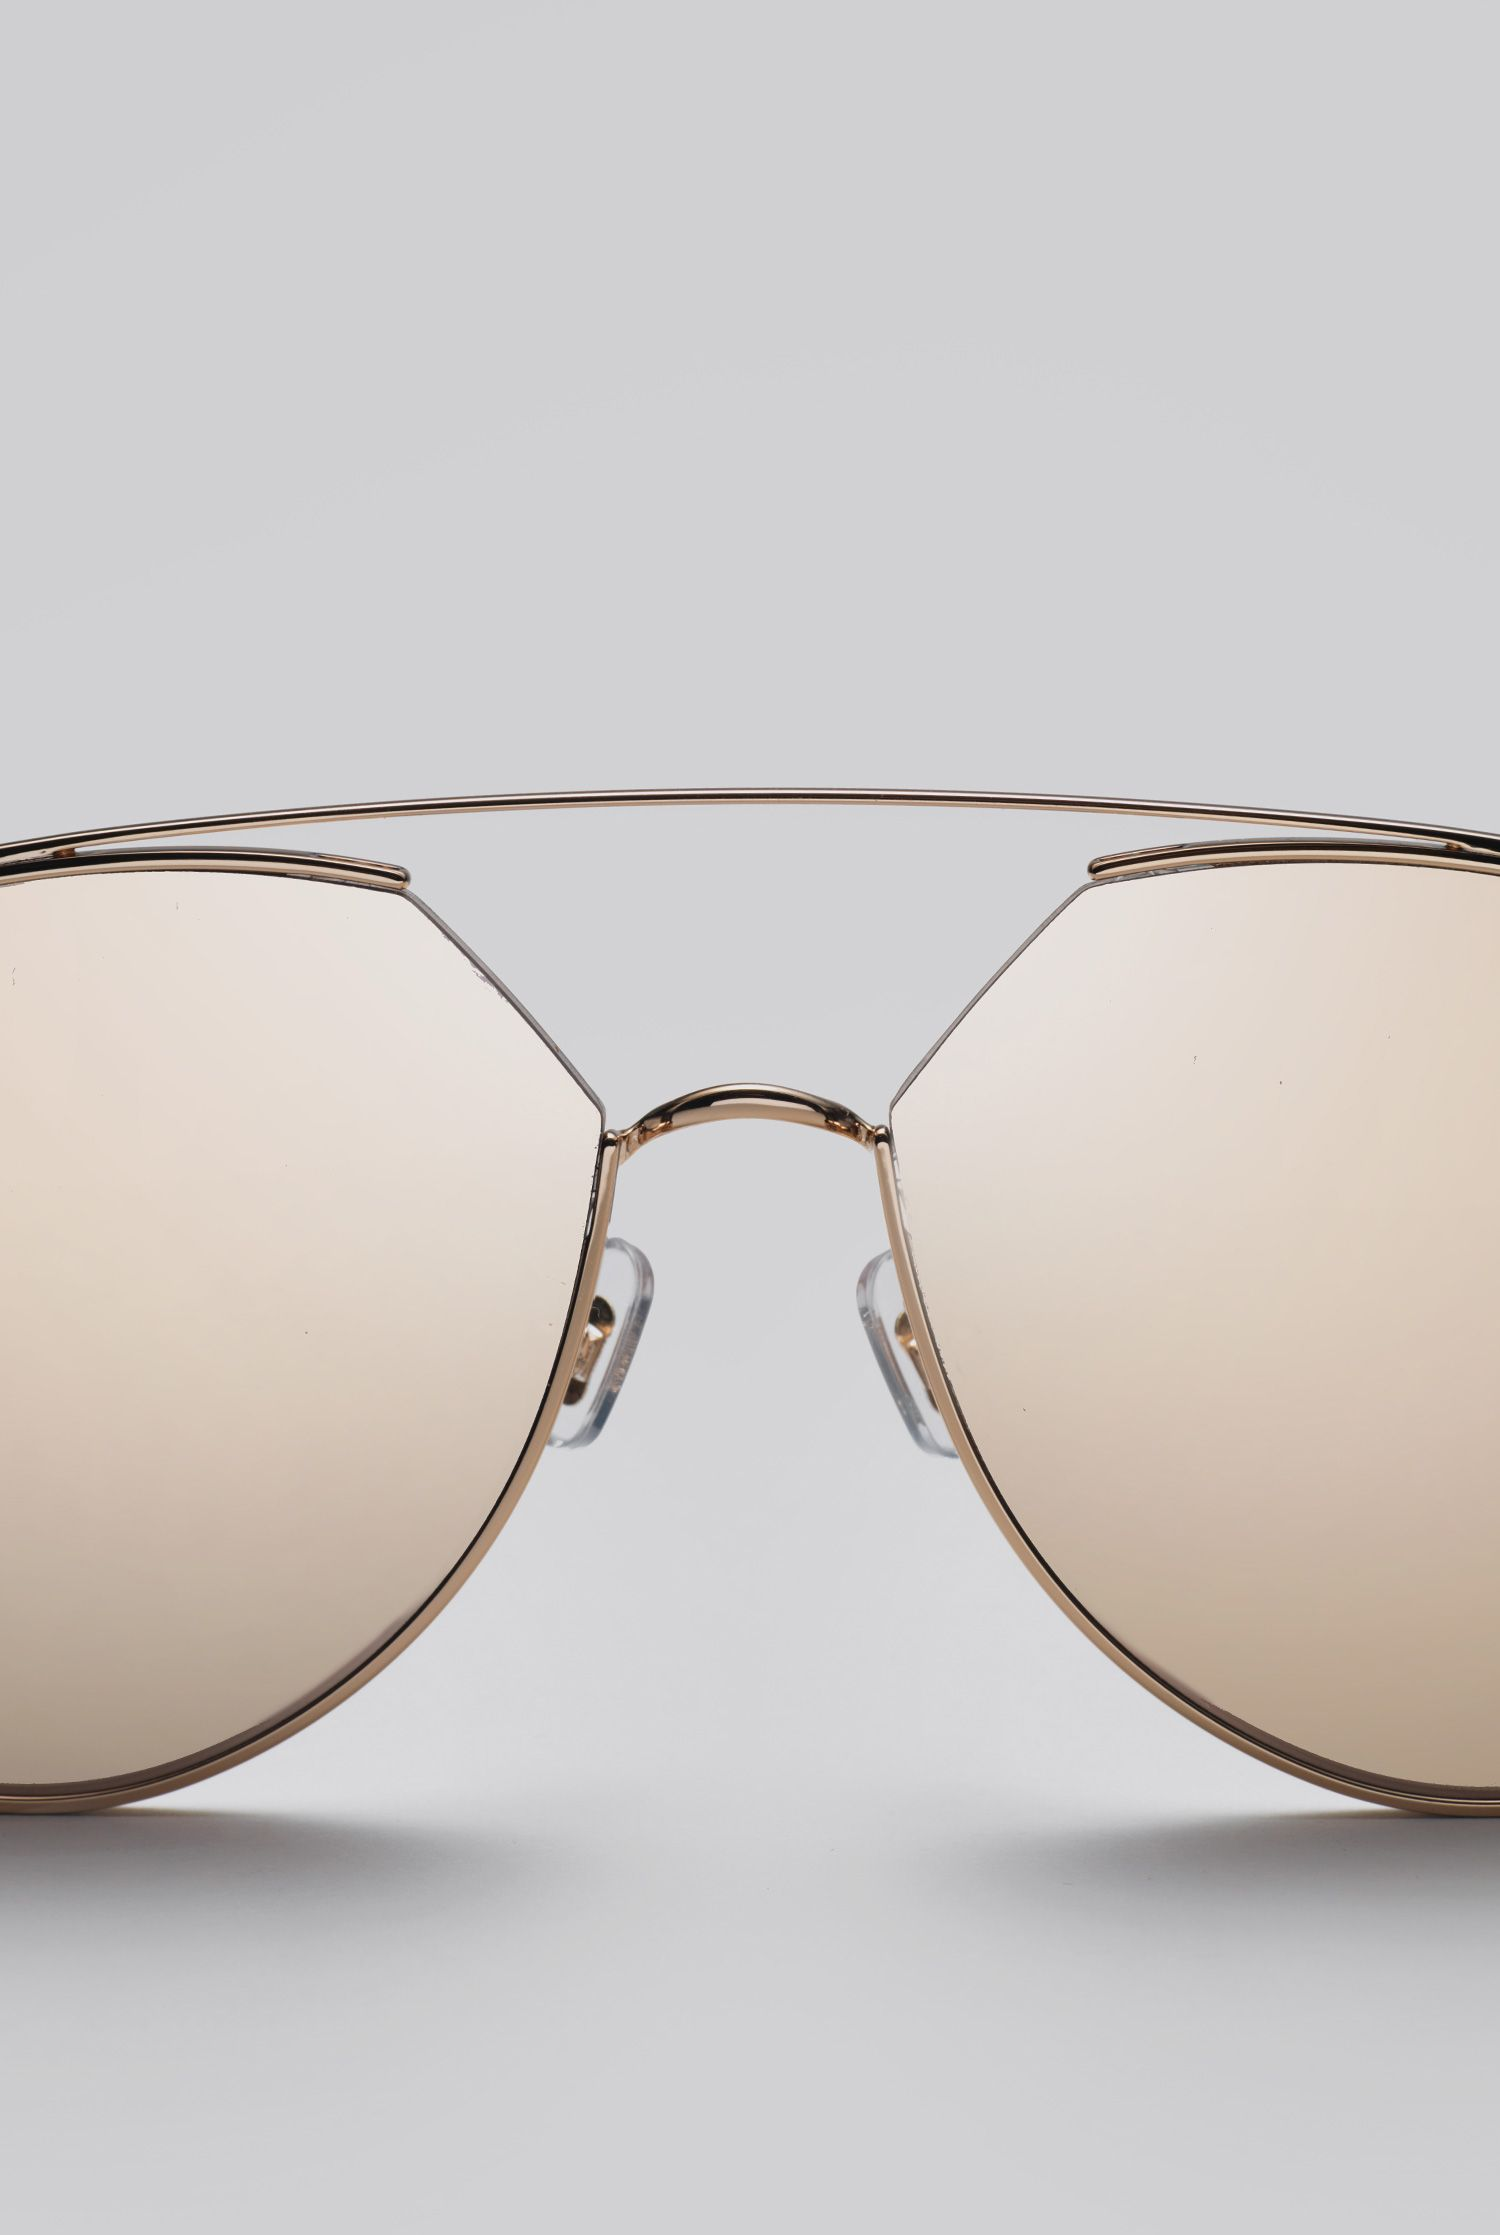 88922a2dd6 GENTLE MONSTER 2018 Sunglasses Z-1 032(14M) Stainless steel front and  Stainless